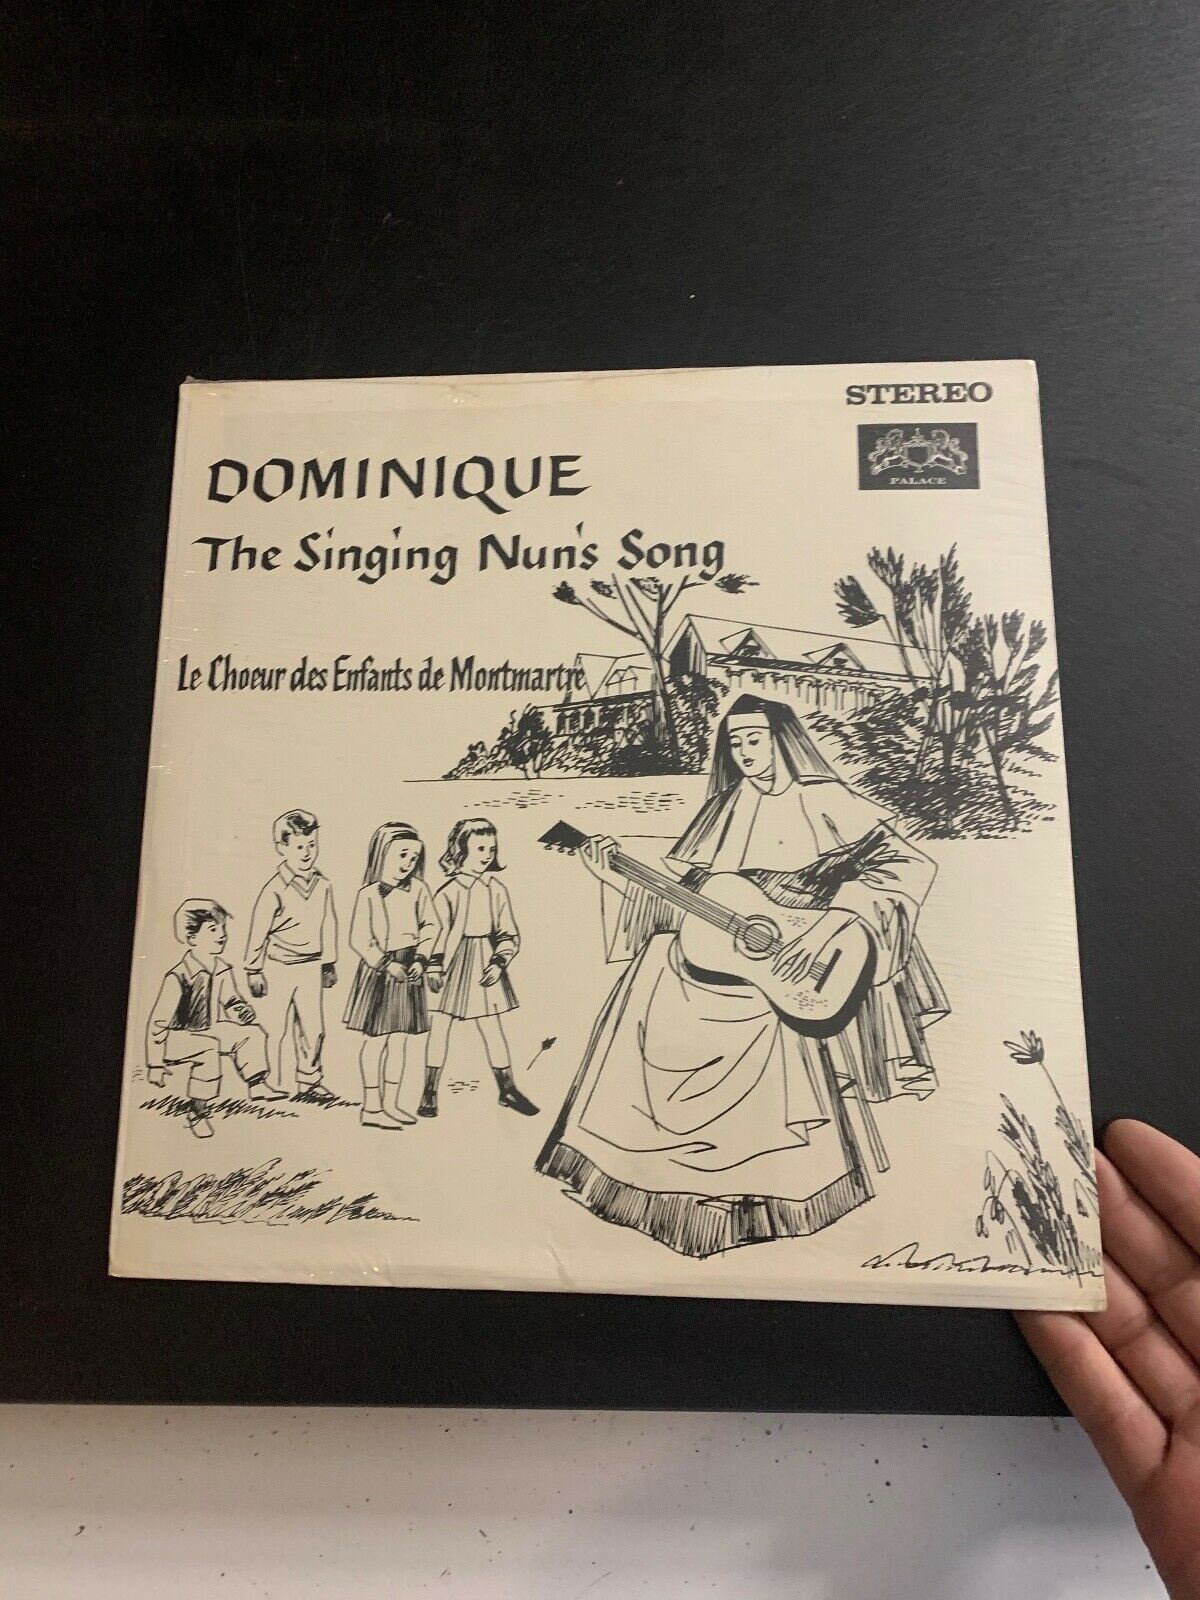 LP RECORD - DOMINIQUE - THE SINGING NUN S SONG NEW IN PLASTIC  - $9.99